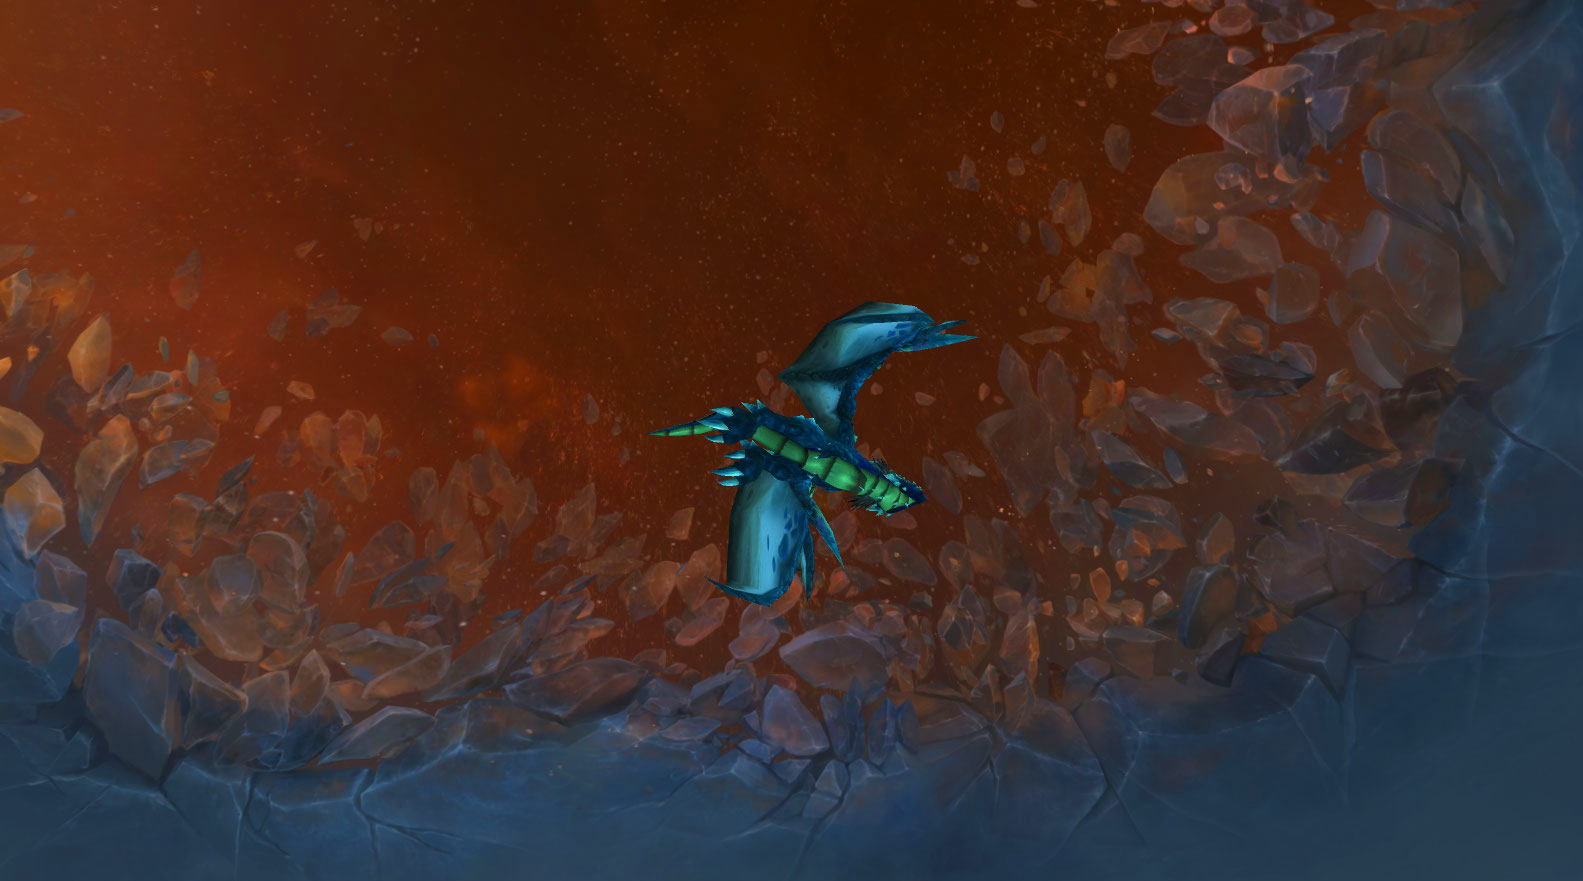 A blue dragon (Rusty) flying against a sky torn open, exposing the Shadowlands beyond.